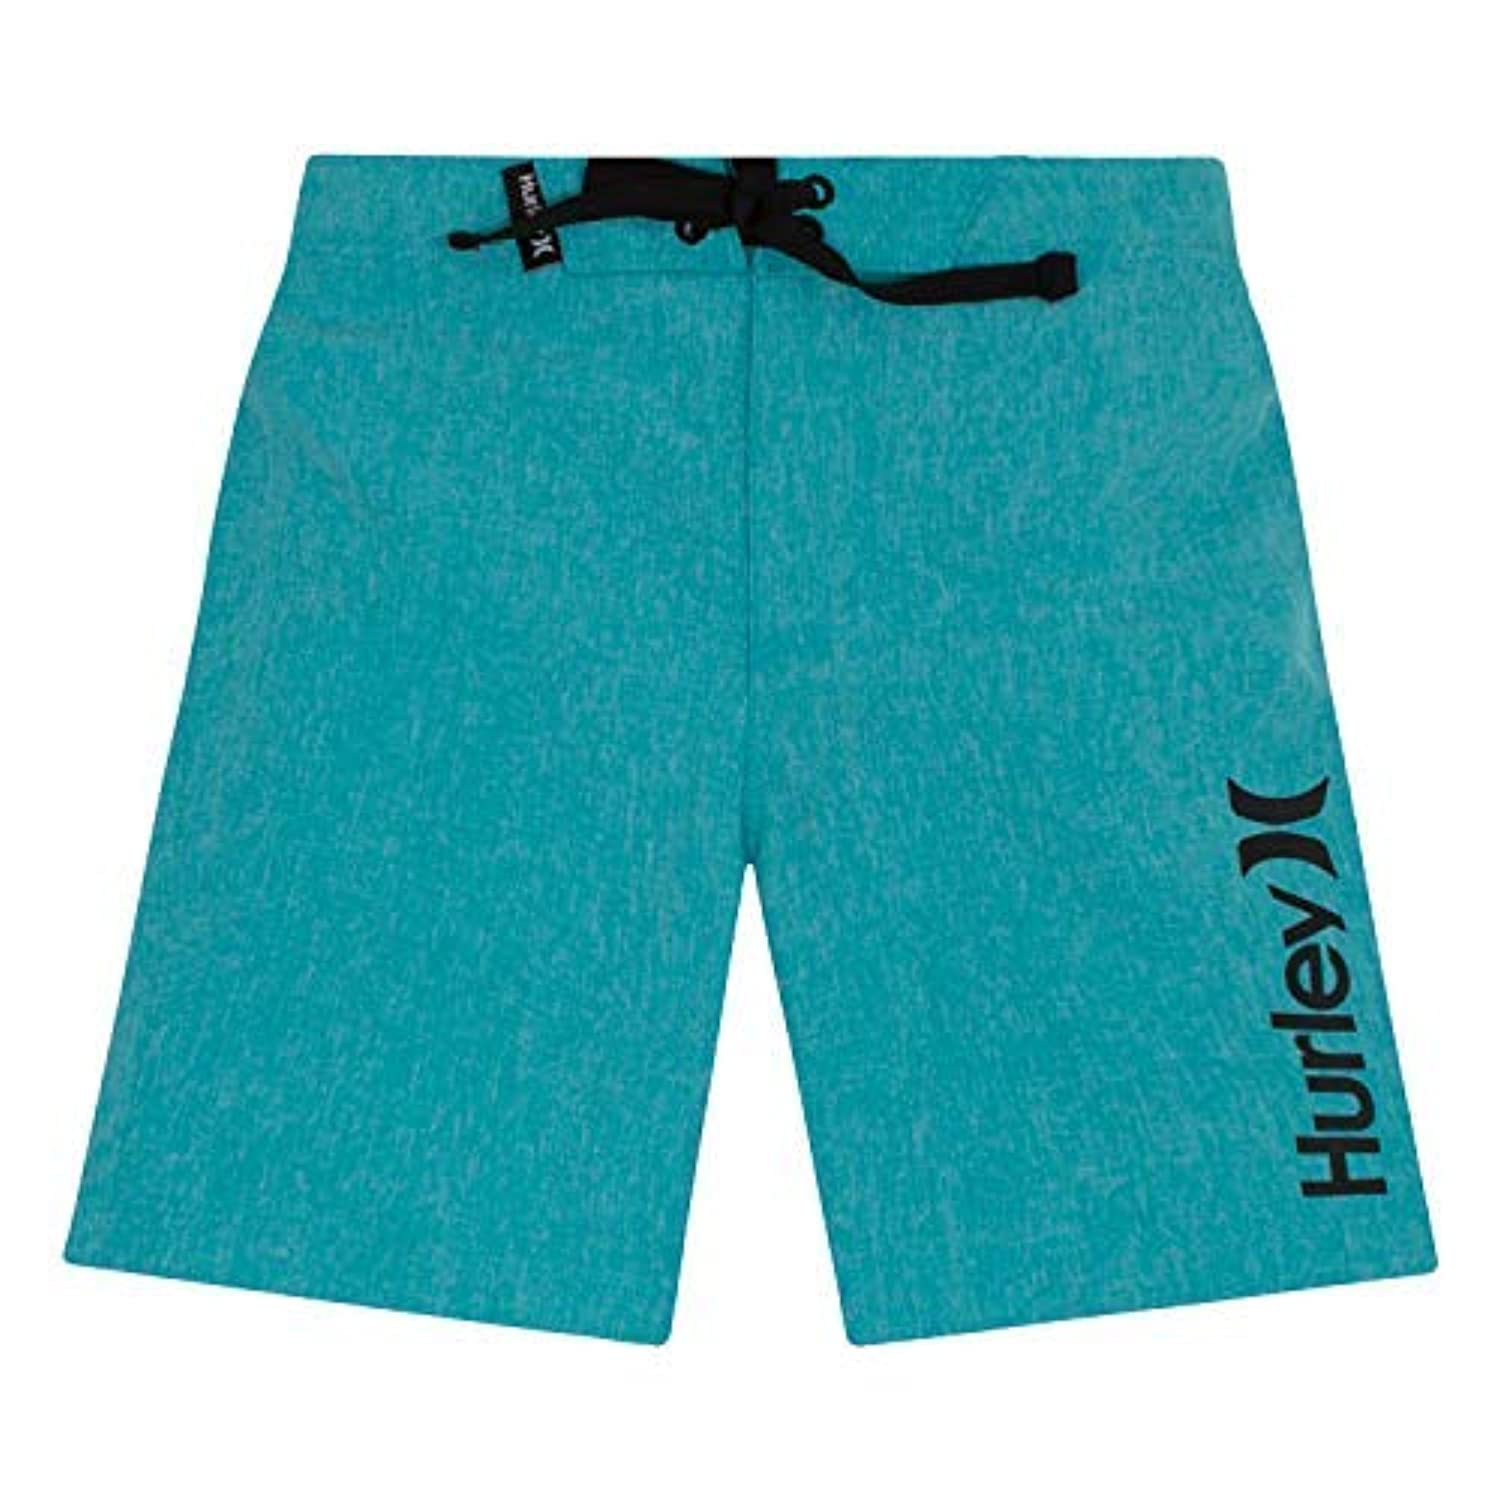 Hurley Boys Board Shorts Dusty Cactus Heather 10 [並行輸入品]